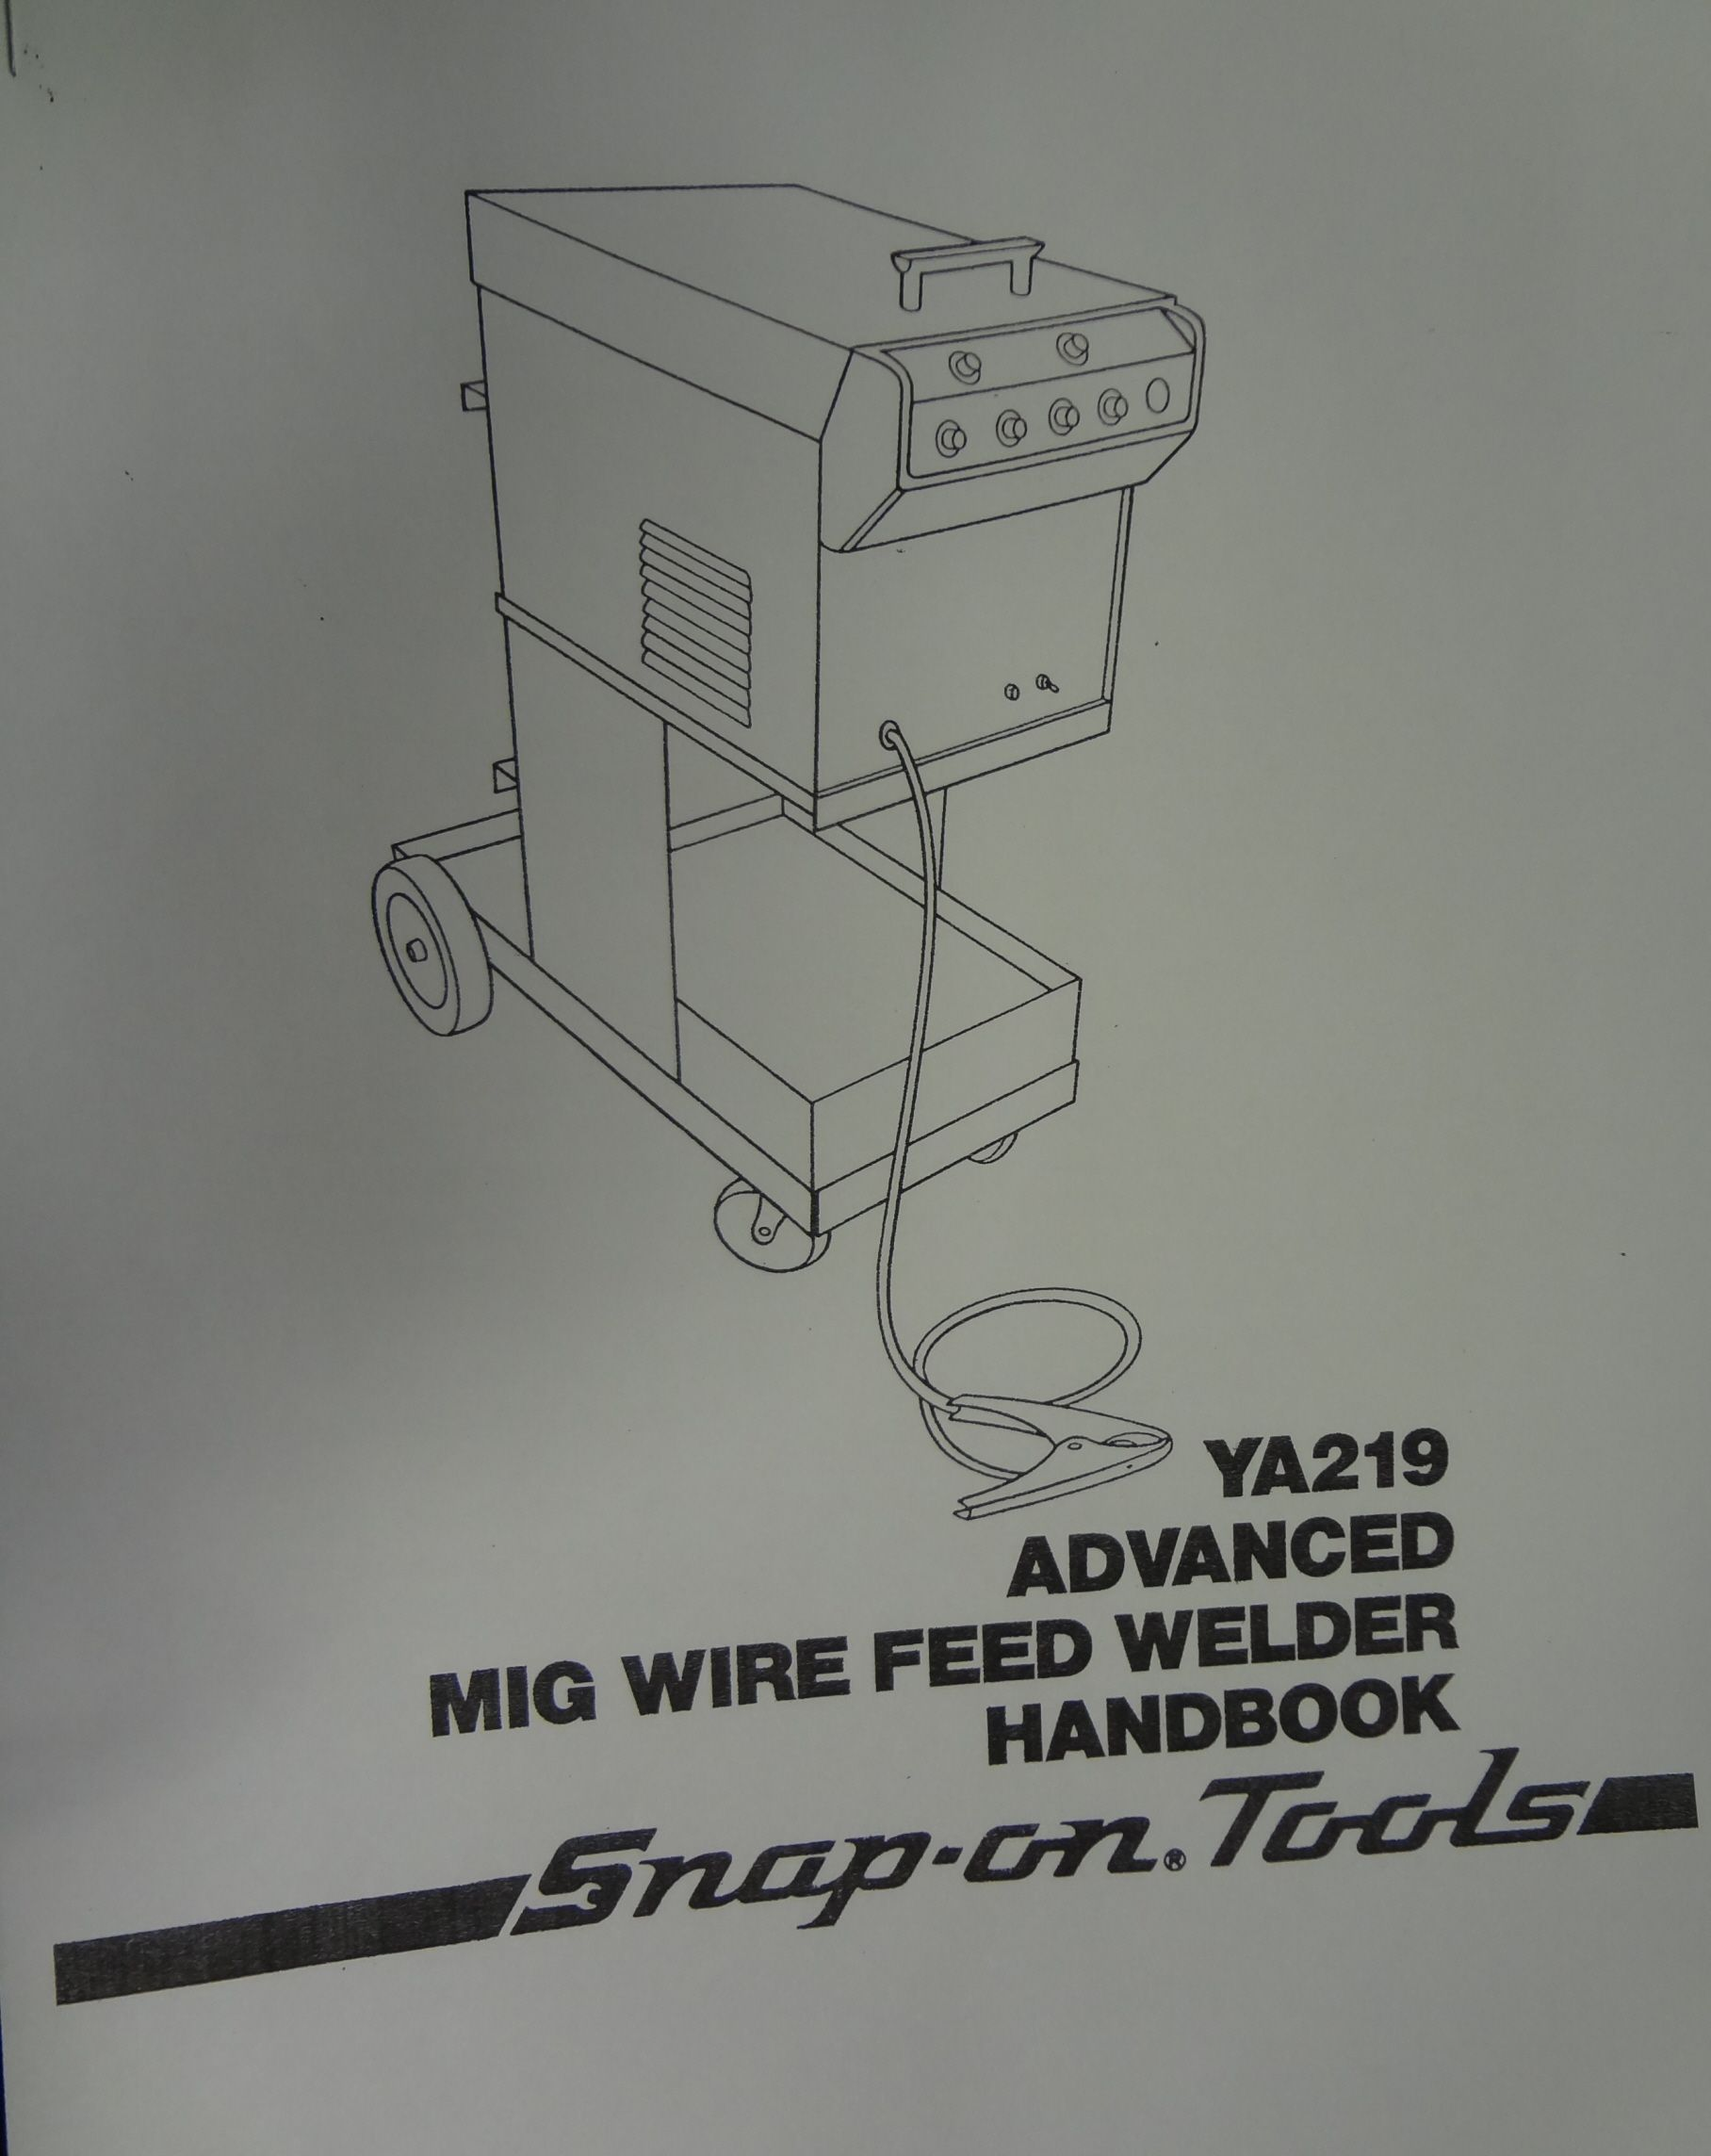 Century Snap On Mig Welder Parts Owners Manual Ya219 In 2018 Diagram Of Welding Tools Weapon Ck Systematics Gun Consumable Kit